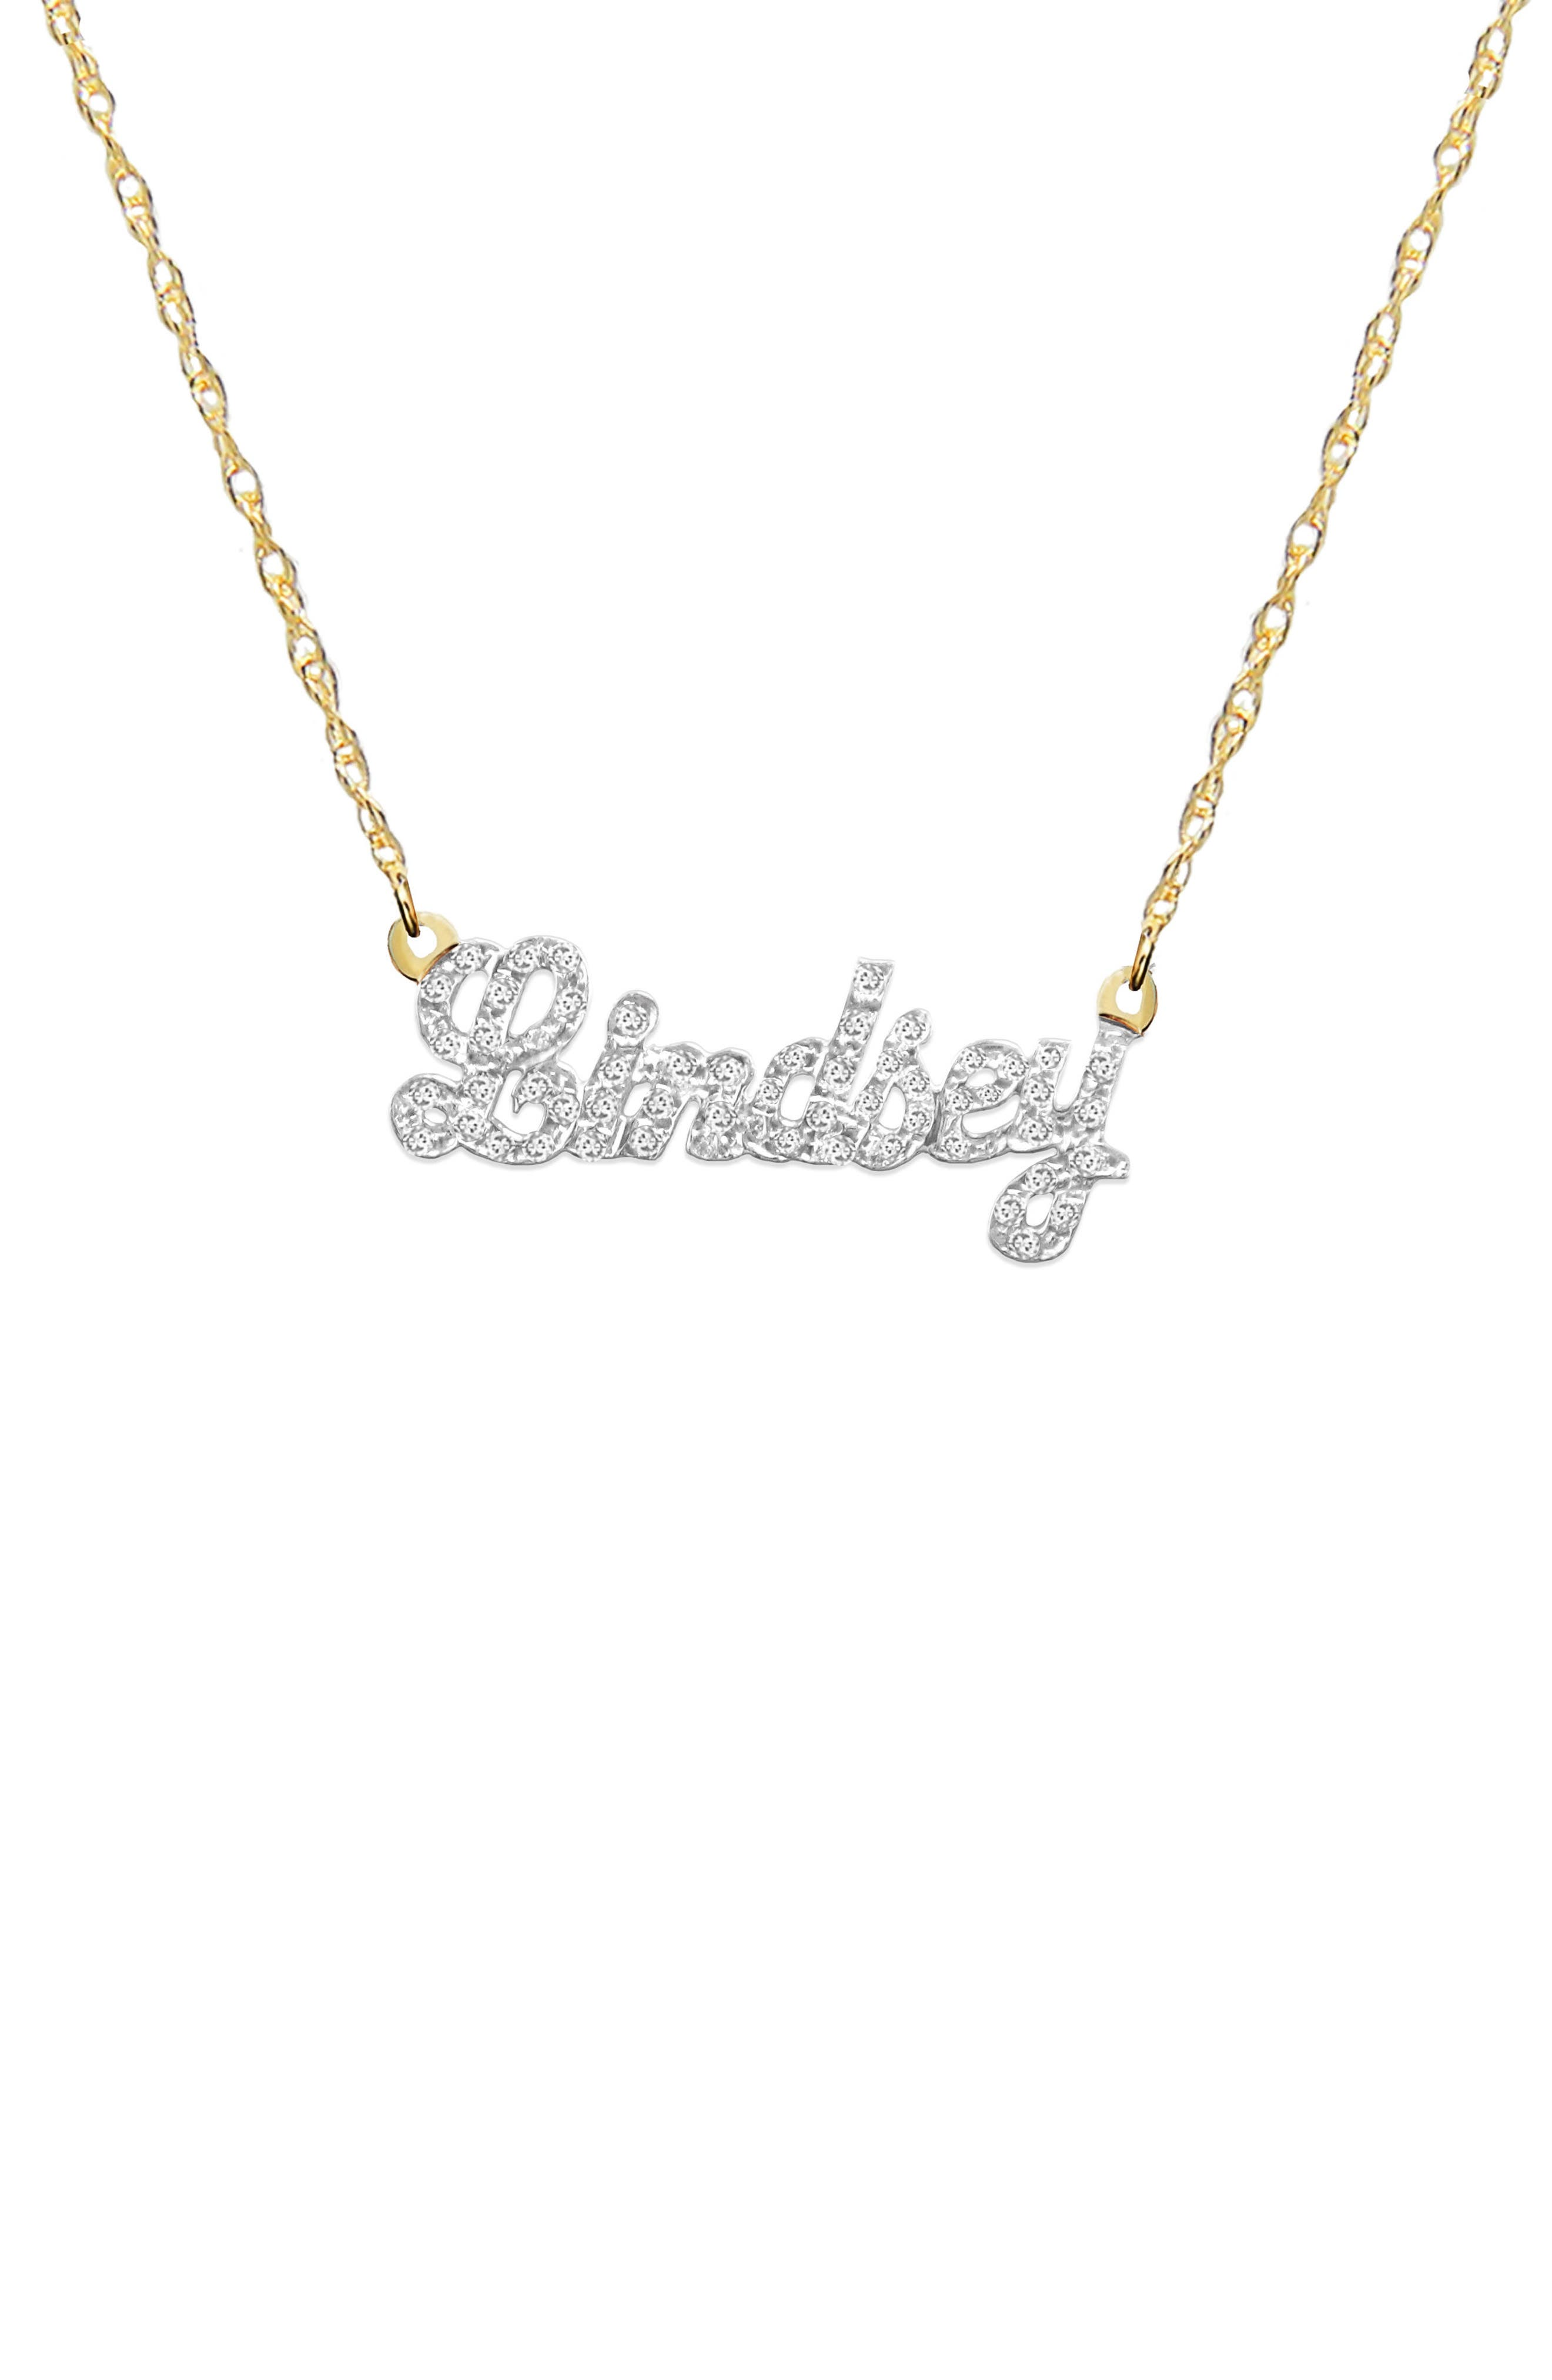 Jane Basch Personalized Nameplate Diamond Pendant Necklace,                         Main,                         color, 14K Yellow Gold